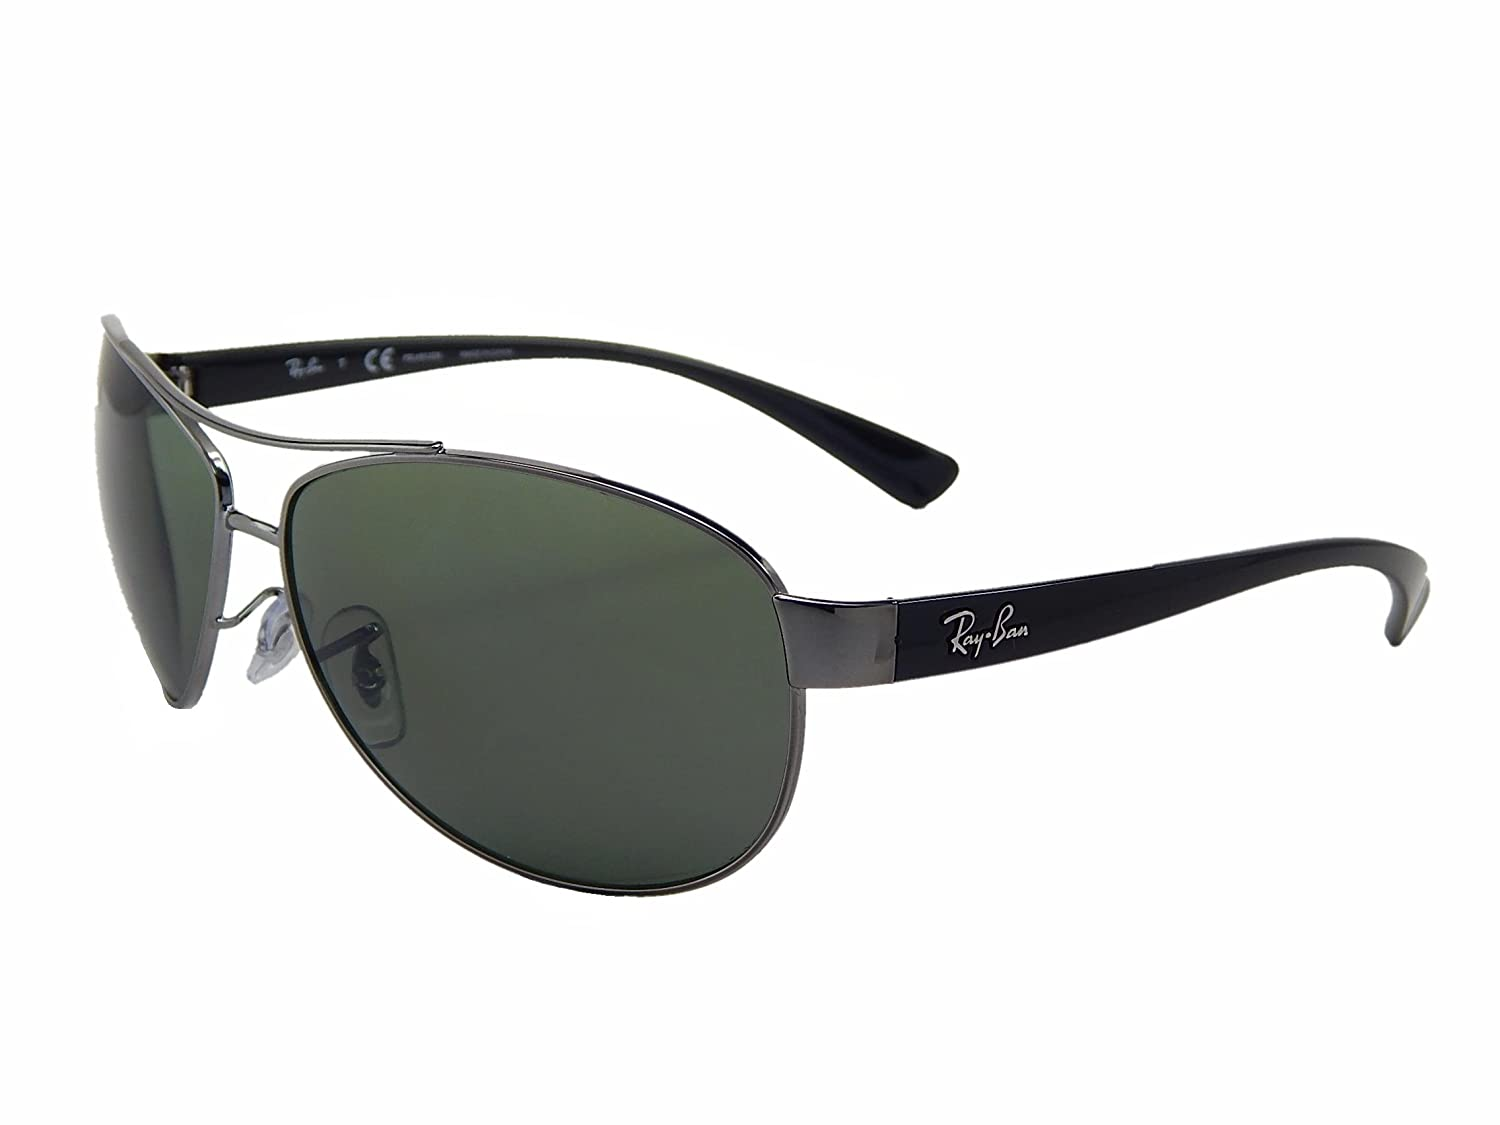 e421e919e69 Amazon.com  New Ray Ban RB3386 004 9A Gunmetal  Green 67mm Polarized  Sunglasses  Clothing